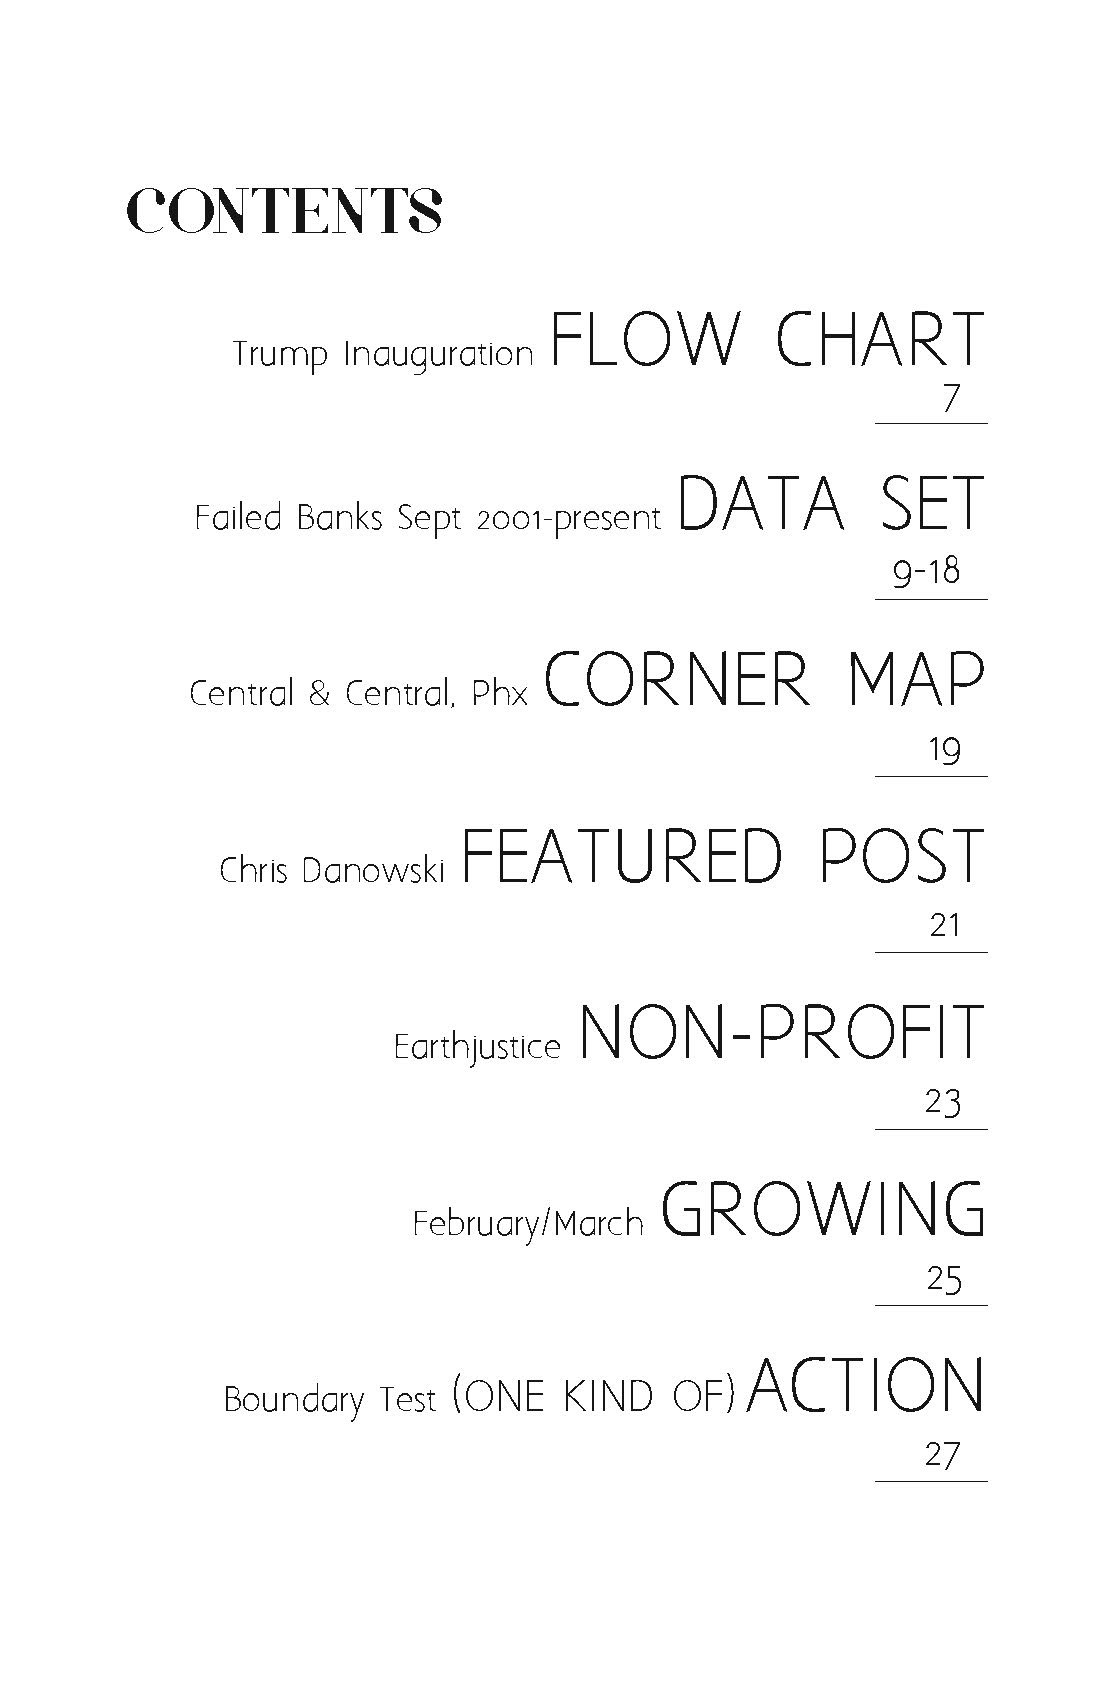 Patterns of Action zine issue 1 table of contents